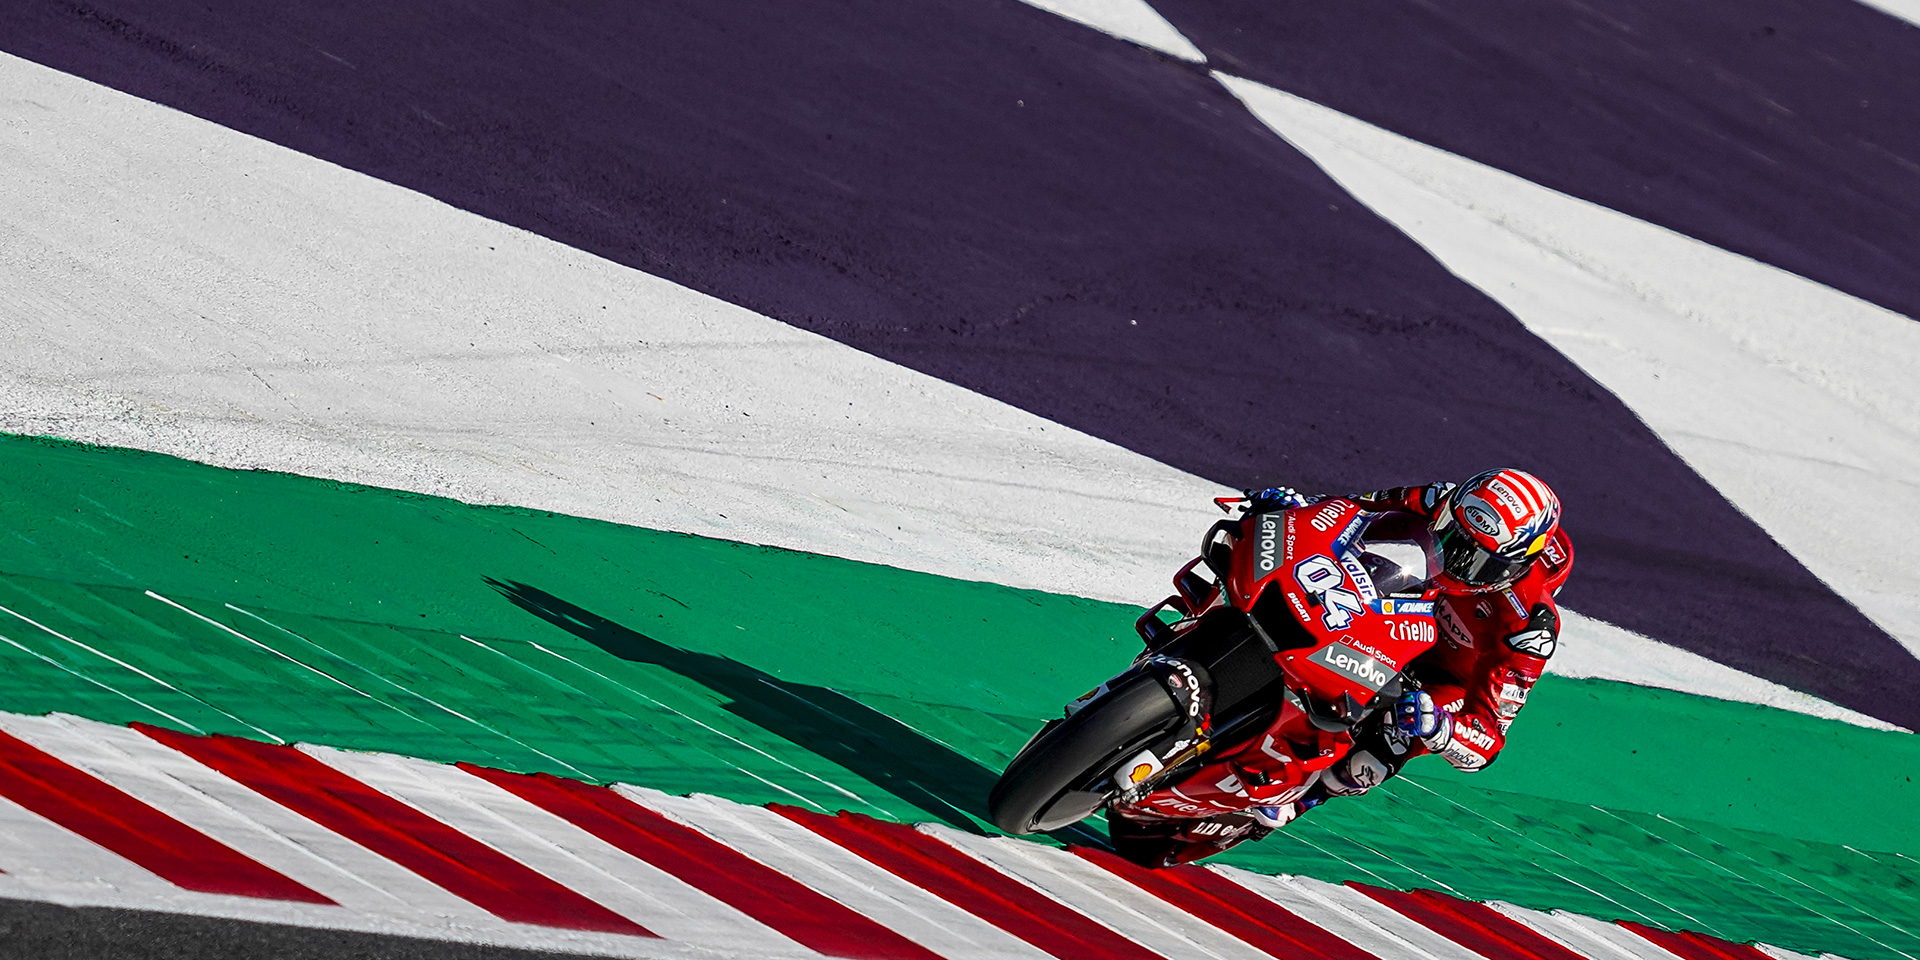 Second row start for Andrea Dovizioso, sixth in qualifying for the San Marino Grand Prix. Danilo Petrucci, down in seventeenth place, will start from Row 6, while Michele Pirro gains direct access into Q2 and finishes twelfth